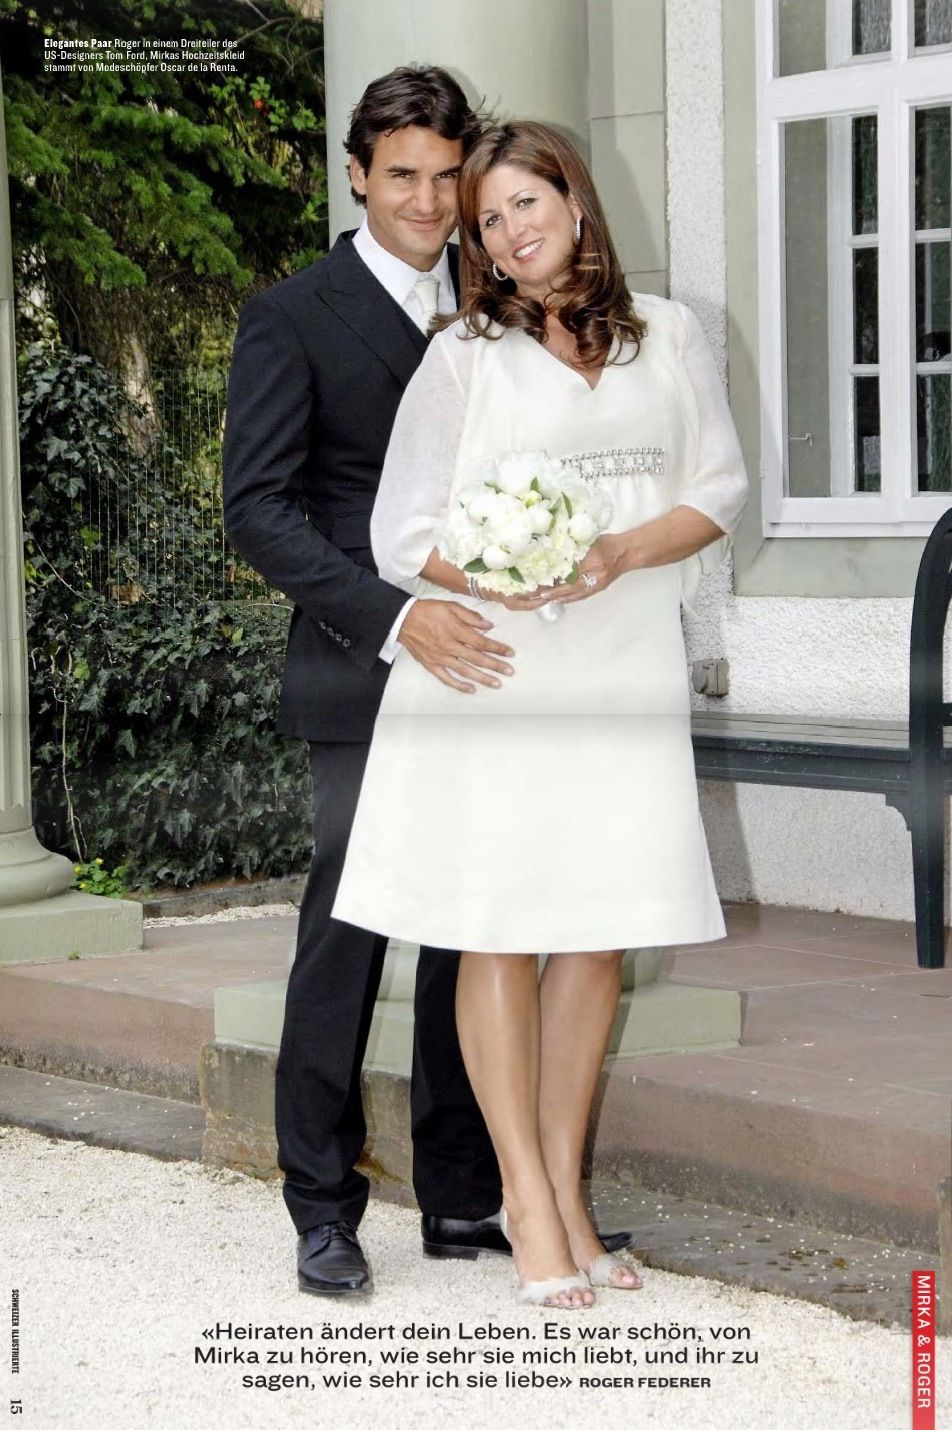 Roger federer and Miroslava Vavrincov married in 2009